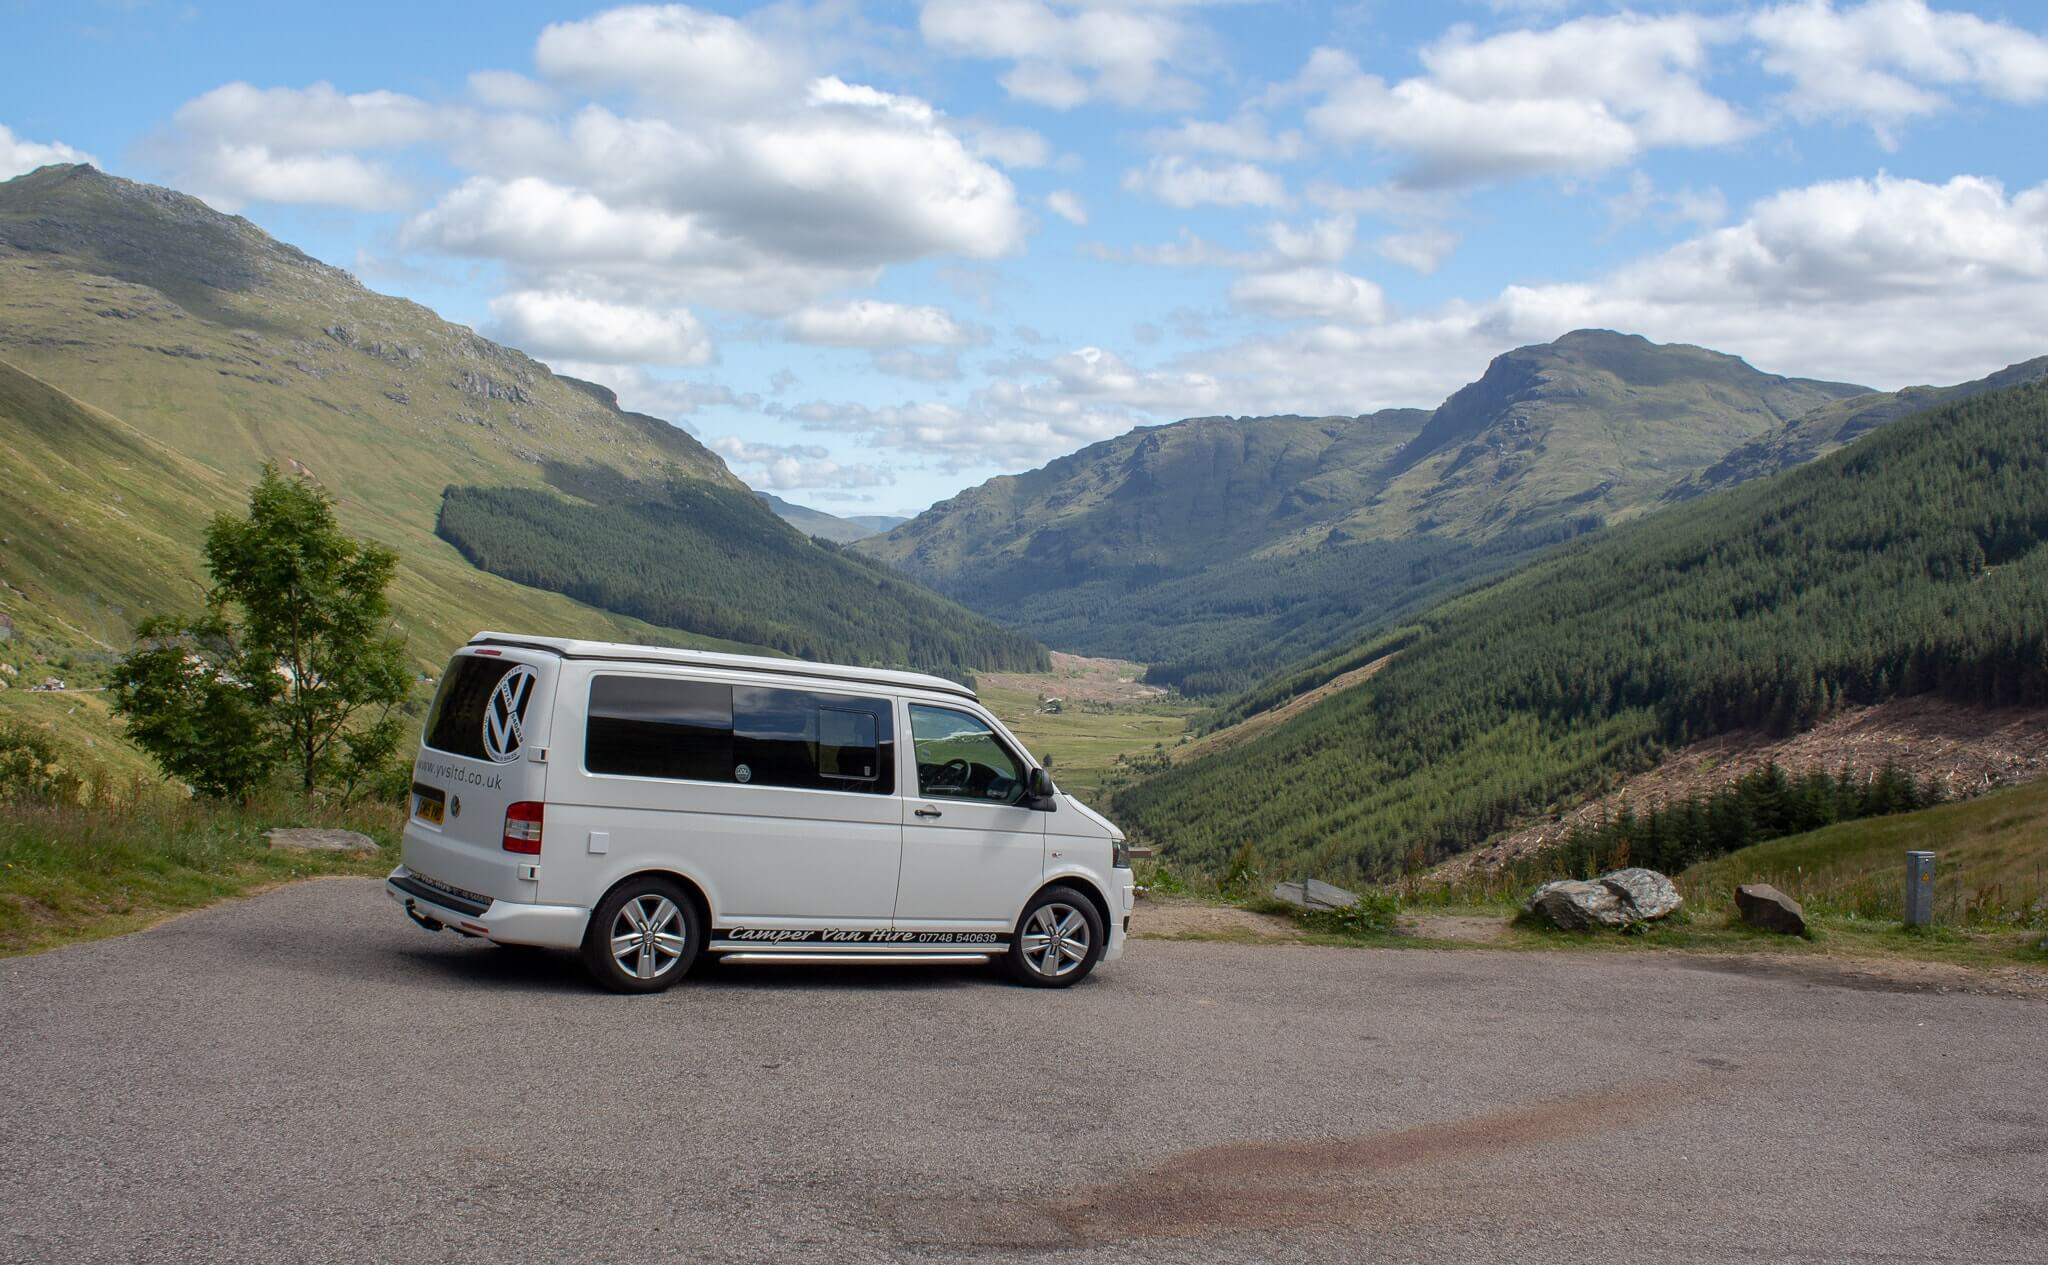 White Camper Van in Scotland at teh rest and be Thankful visitors stop with scottish mountains in teh background